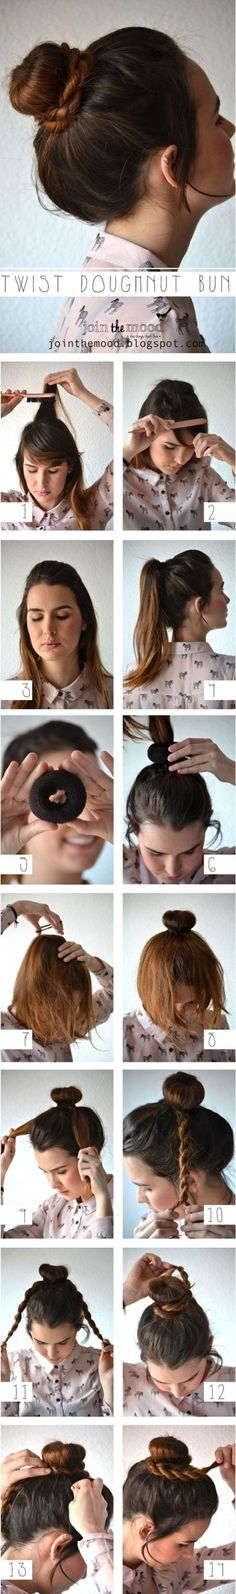 Cute for those outfits that look best with an updo but not an updo like a messy bun or somethig. This is a great idea for that sorta thing.